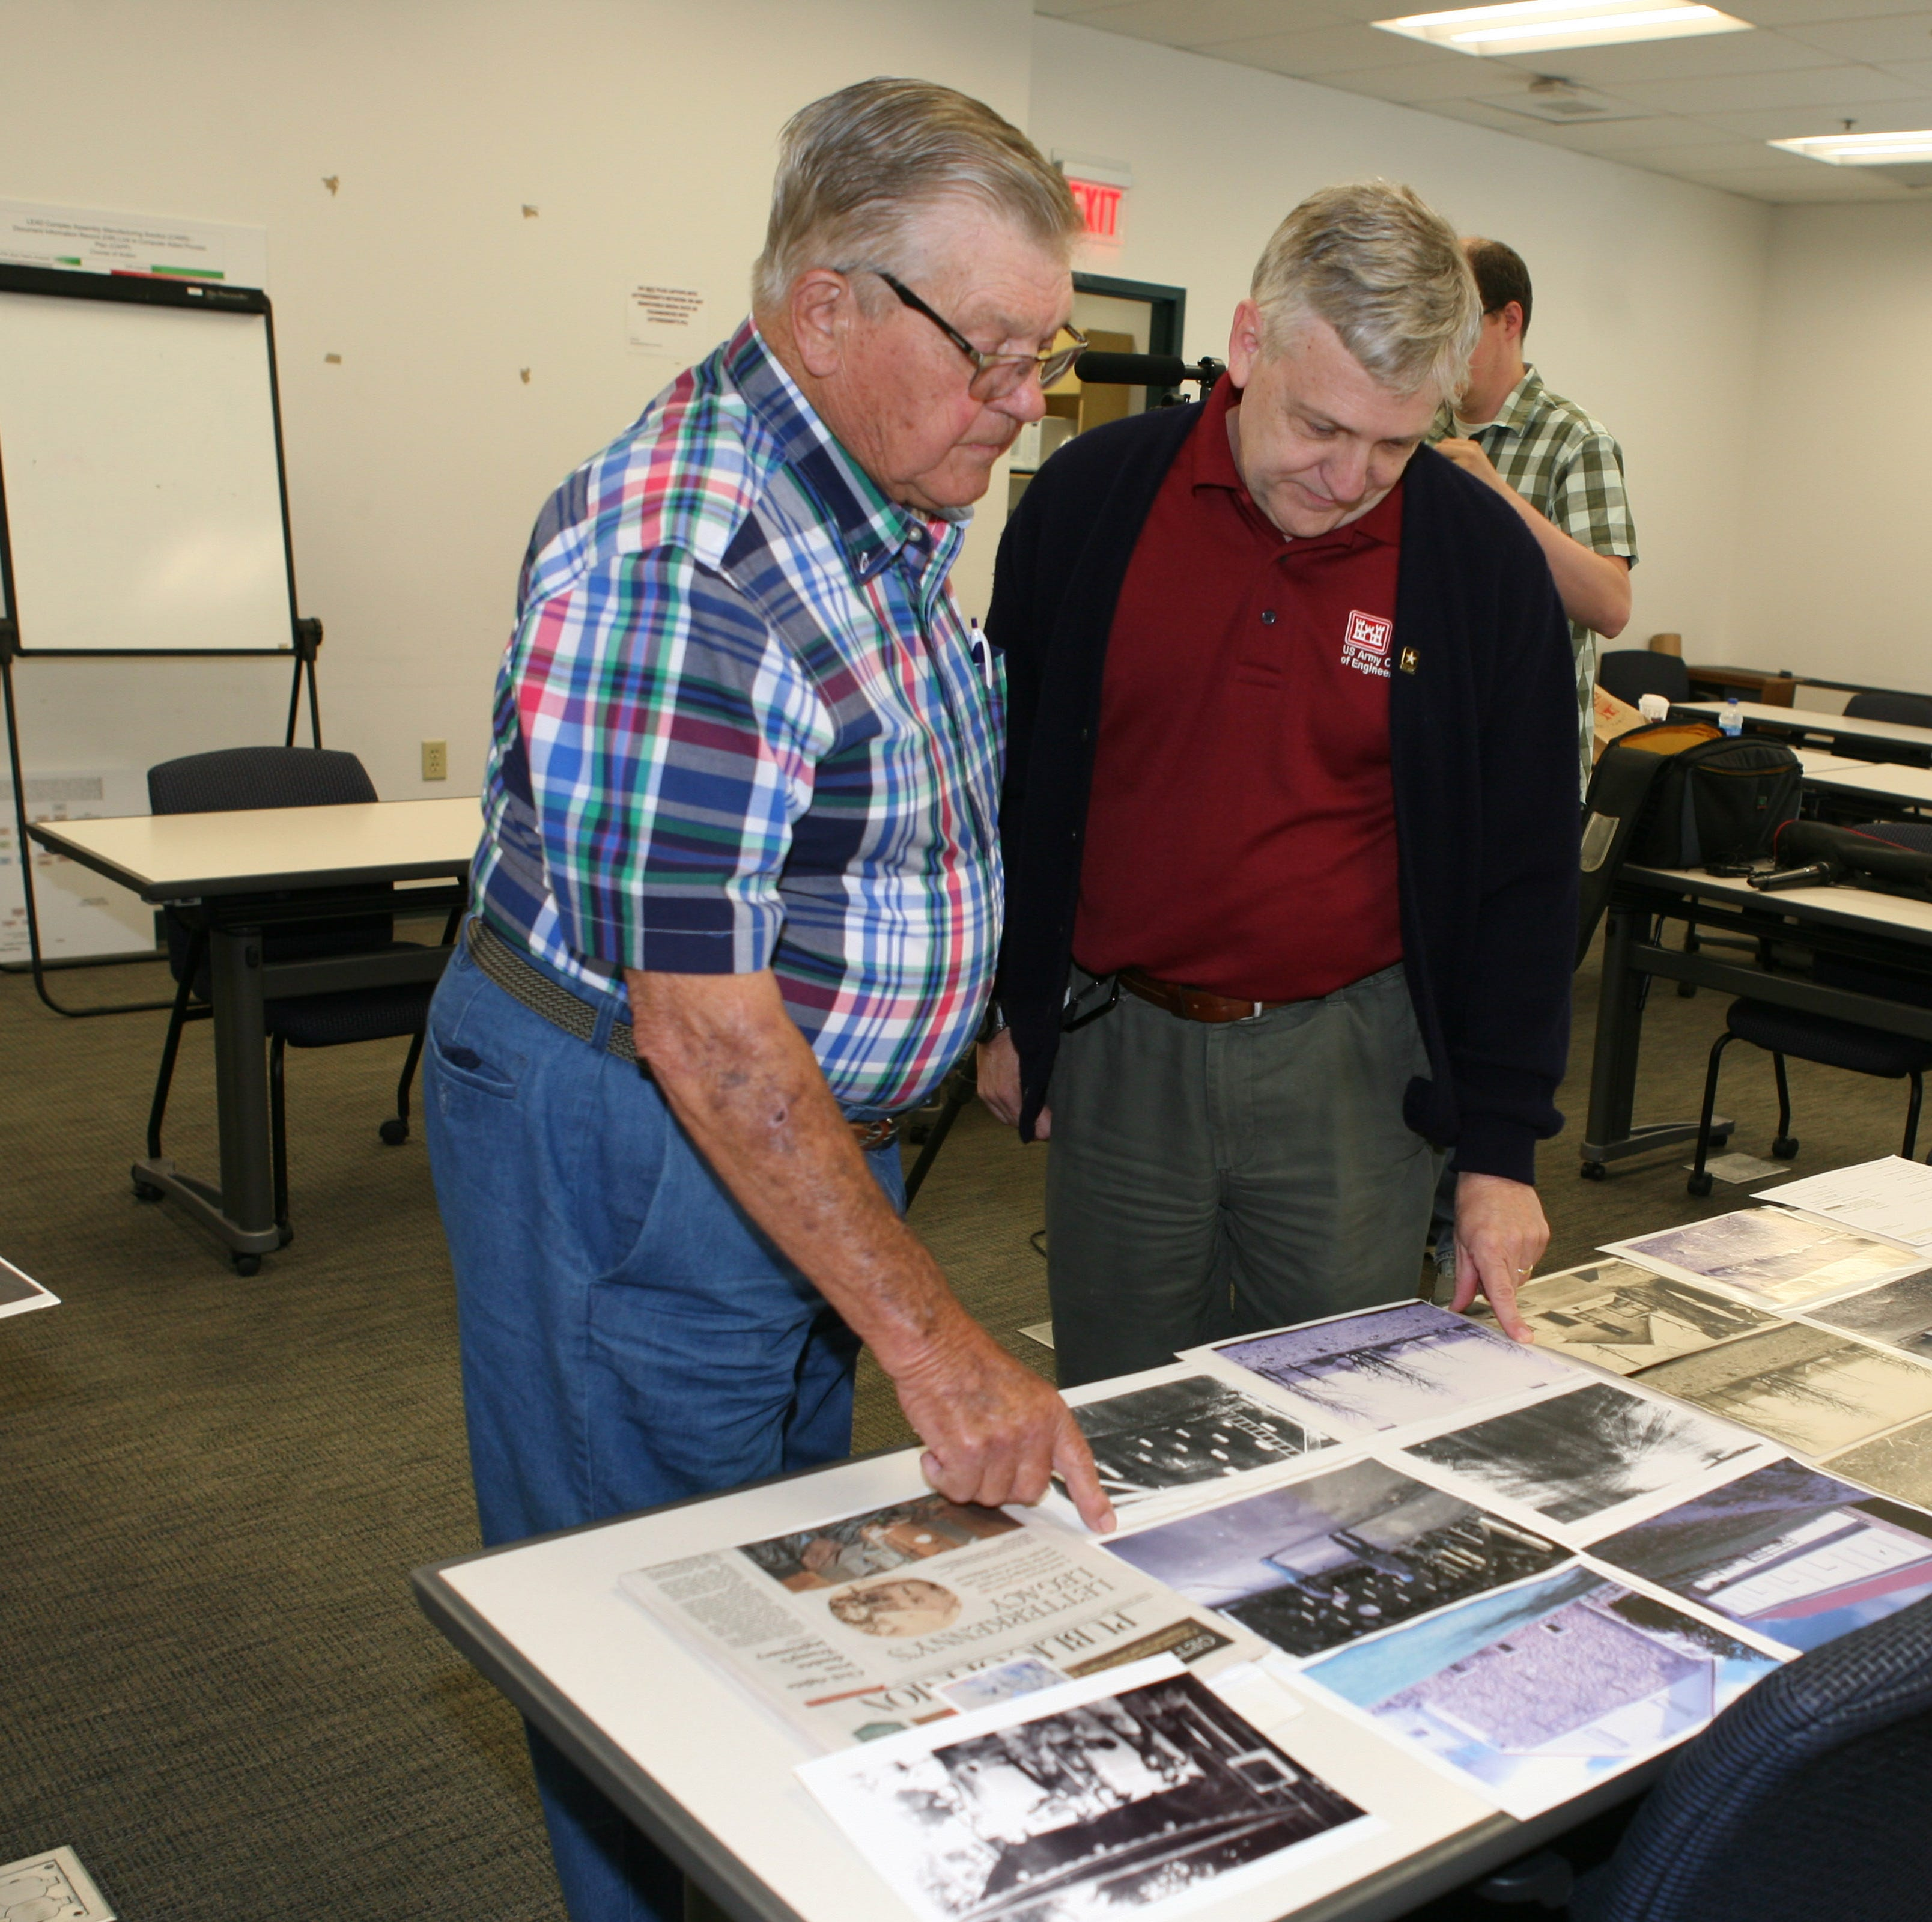 Dr. Douglas Warnock, acting president of the Letterkenny Army Depot Historical Committee,  looks at old photos with Harold Forrester as they discussed Forrester's life when his family lived on the land now home to the army depot.